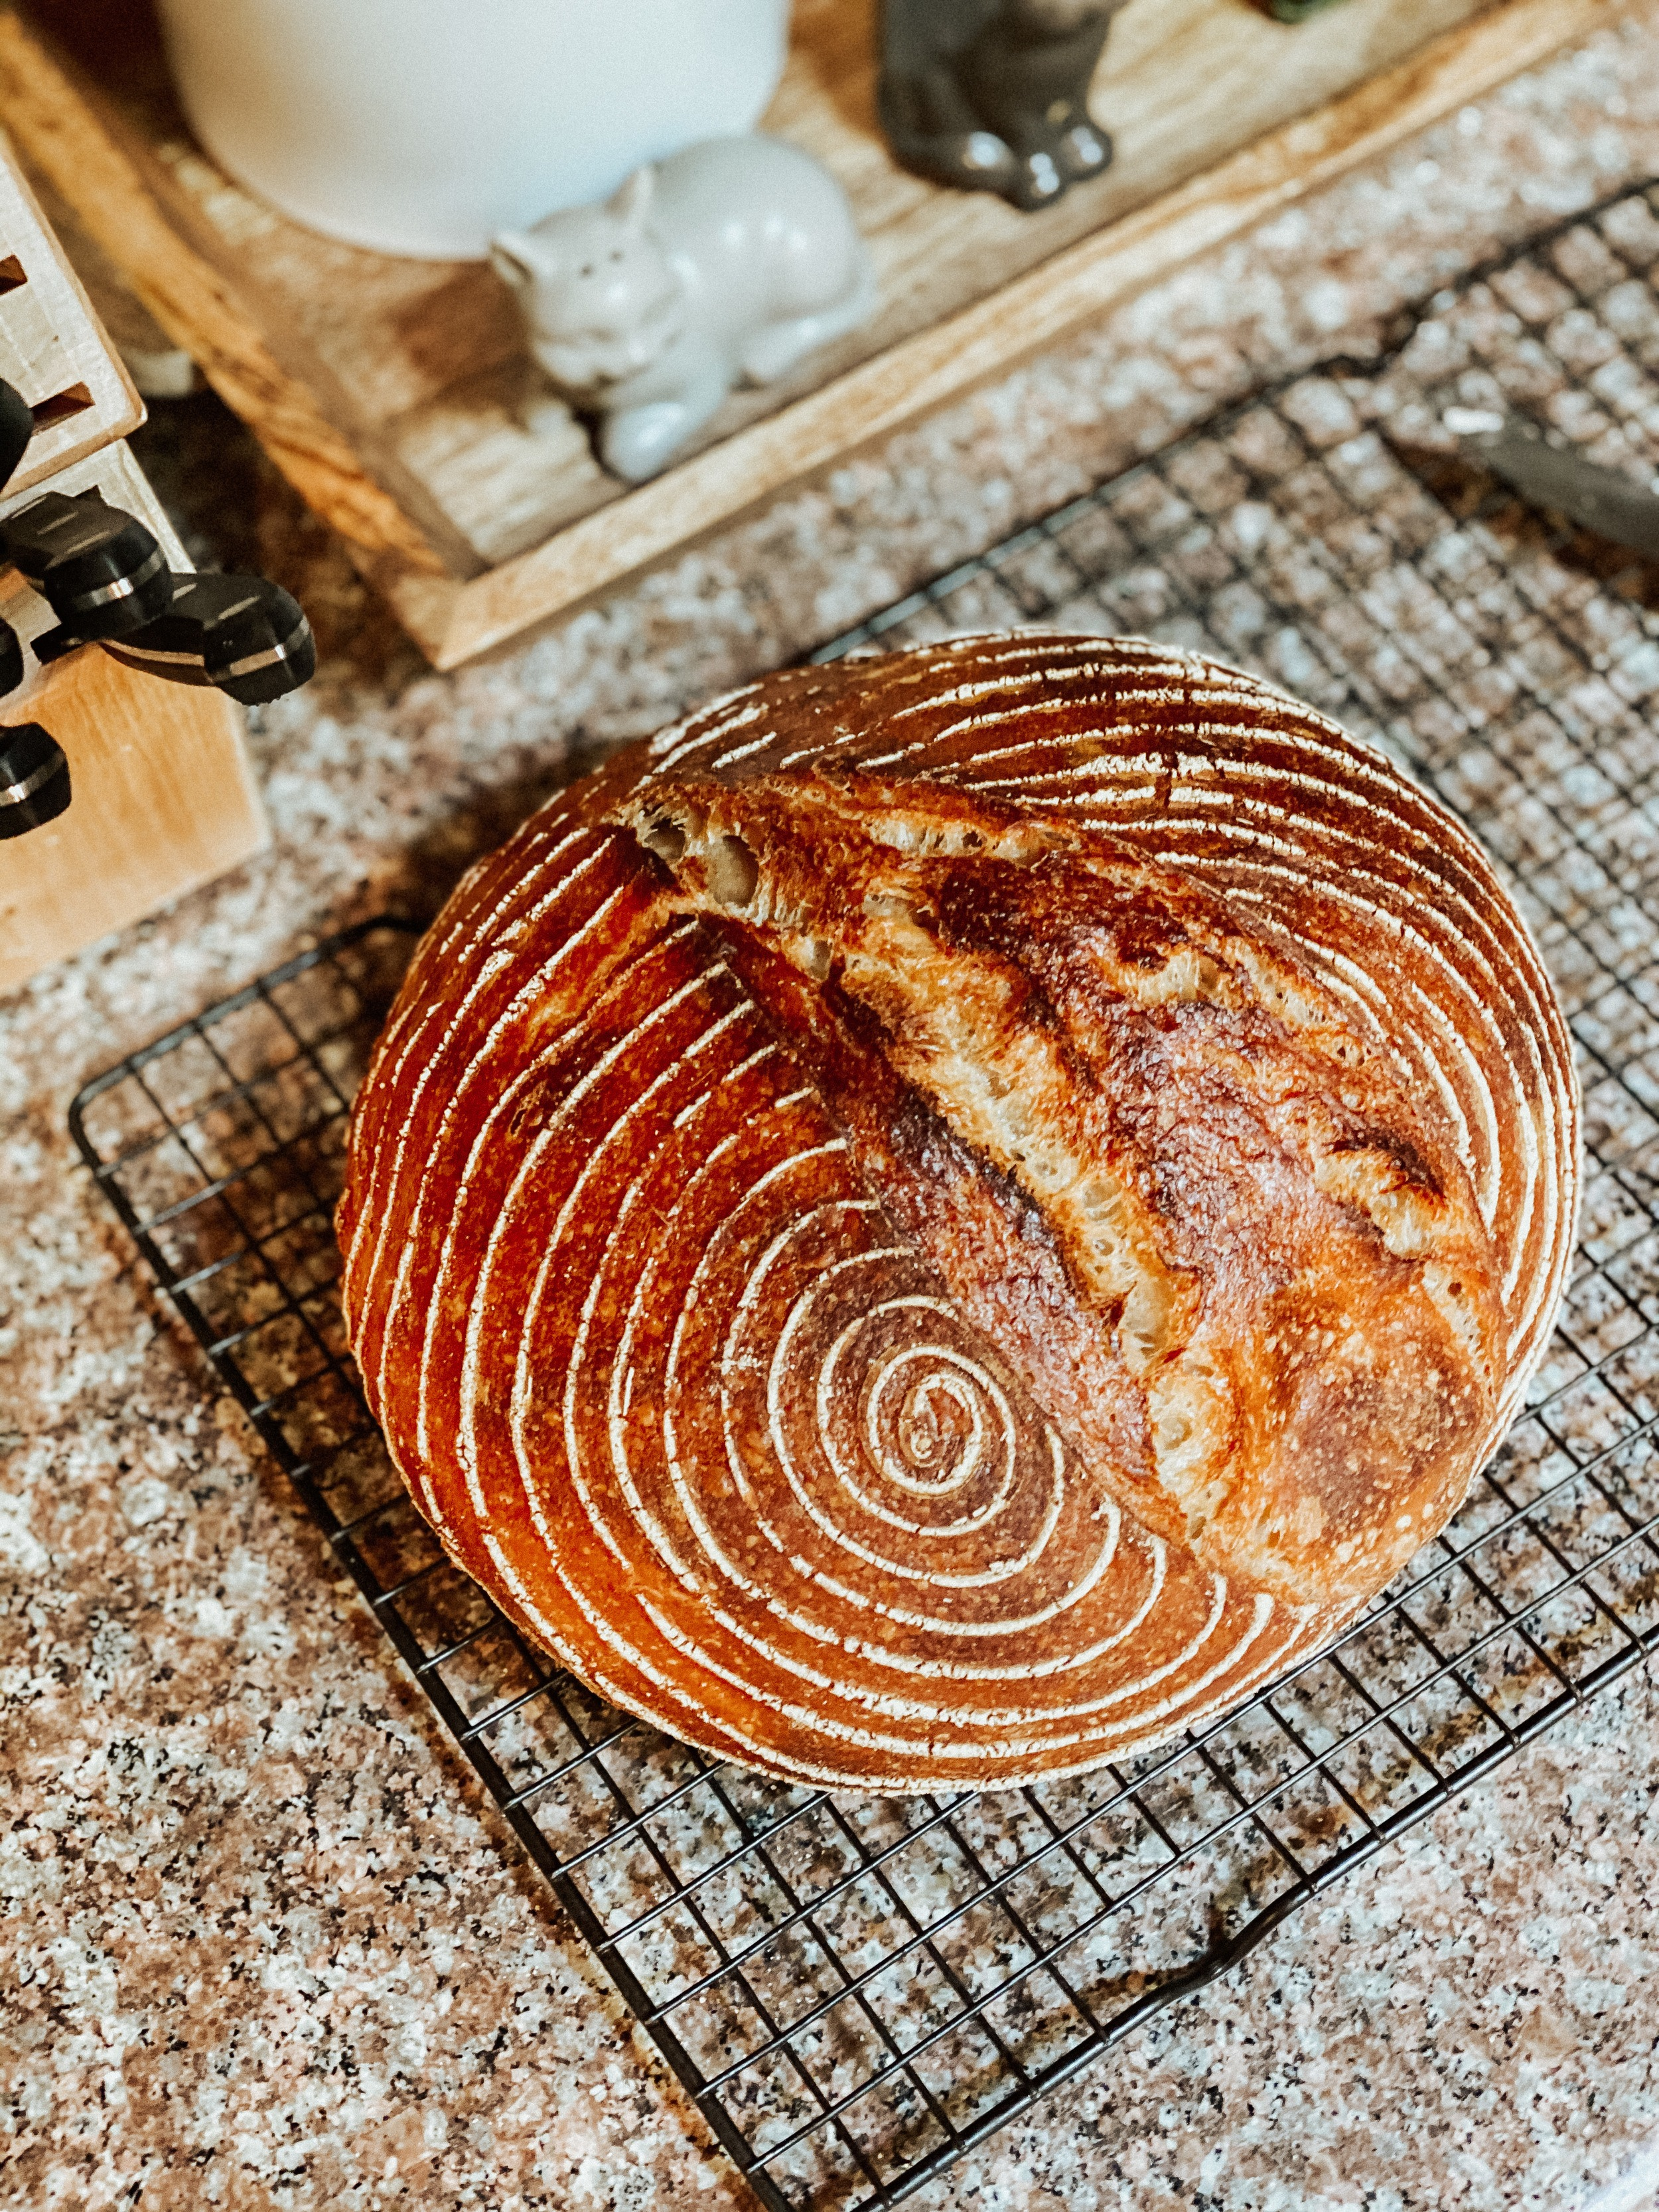 Learn how to celebrate Lammas Day! From making bread to hosting a dinner, this blog post guide has all the Lammas tips and tricks.